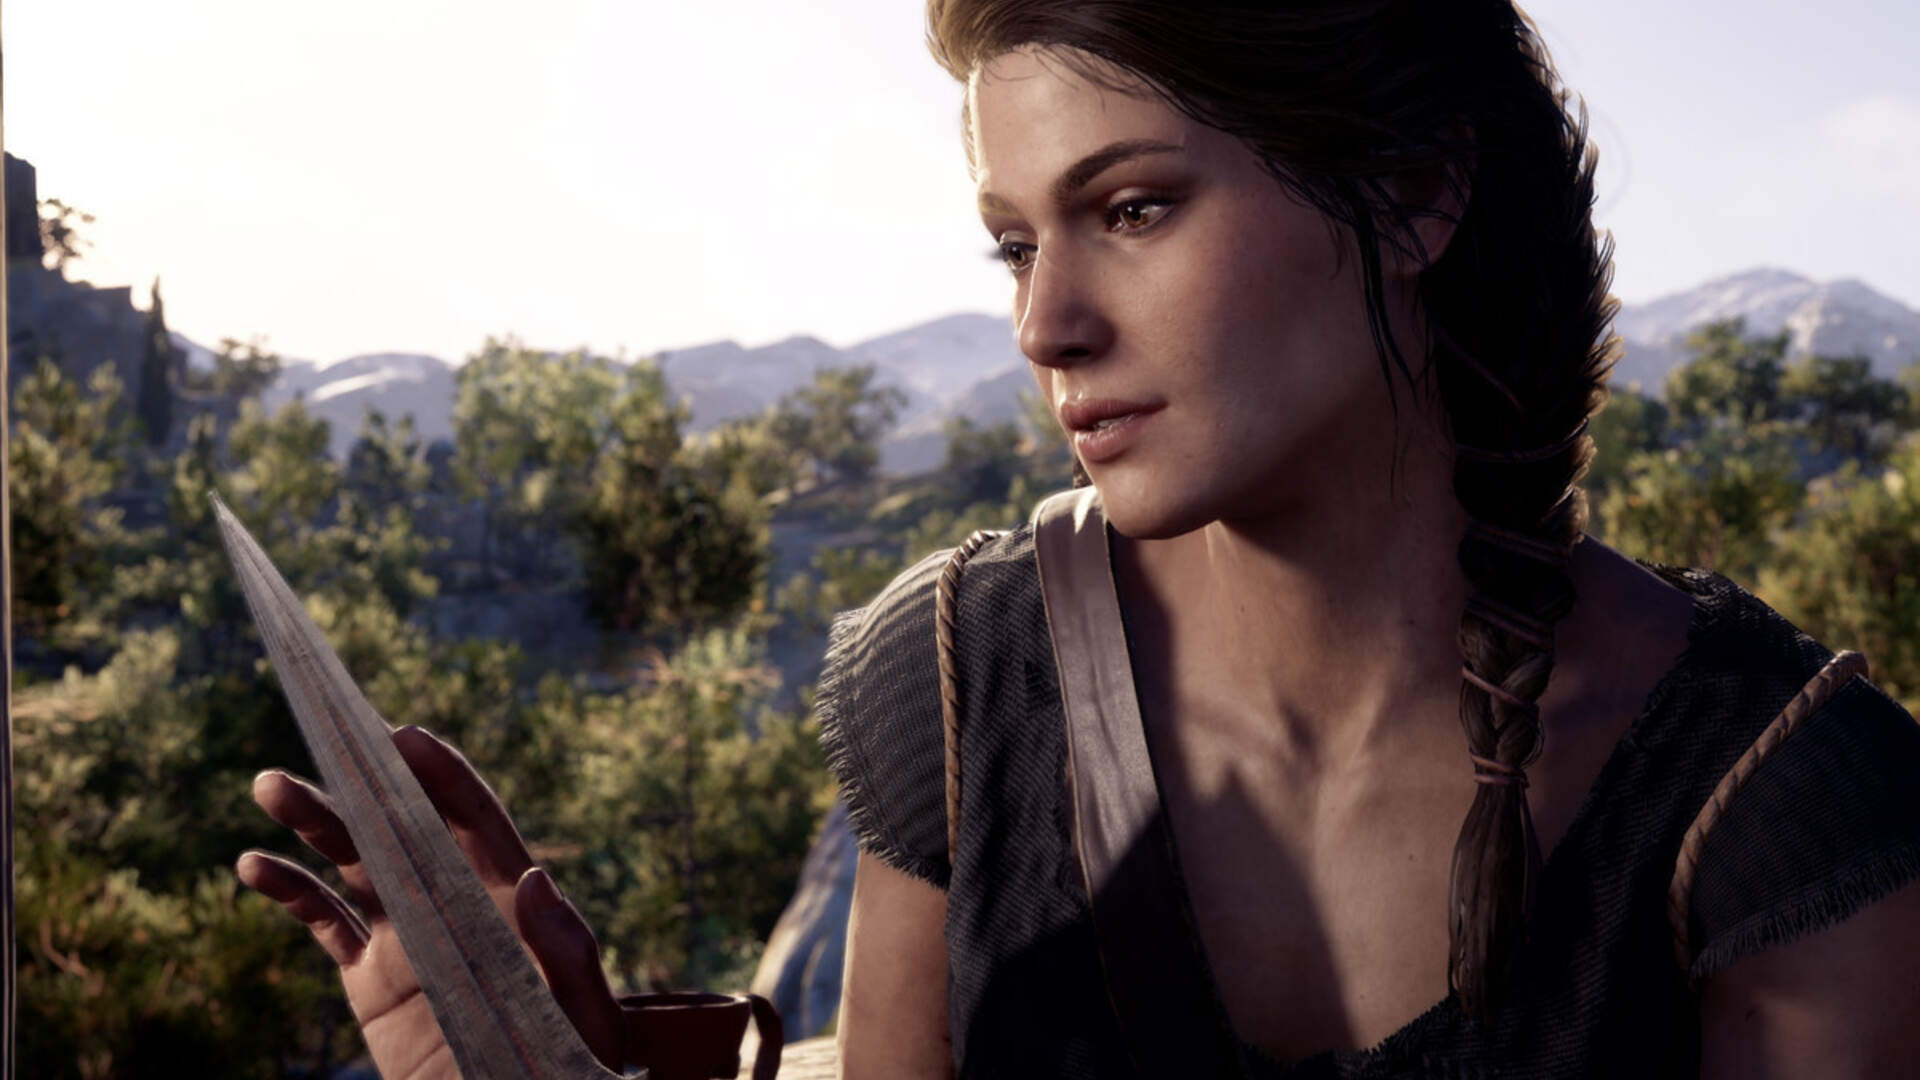 Assassin's Creed Odyssey Director Apologizes for Forced Romance